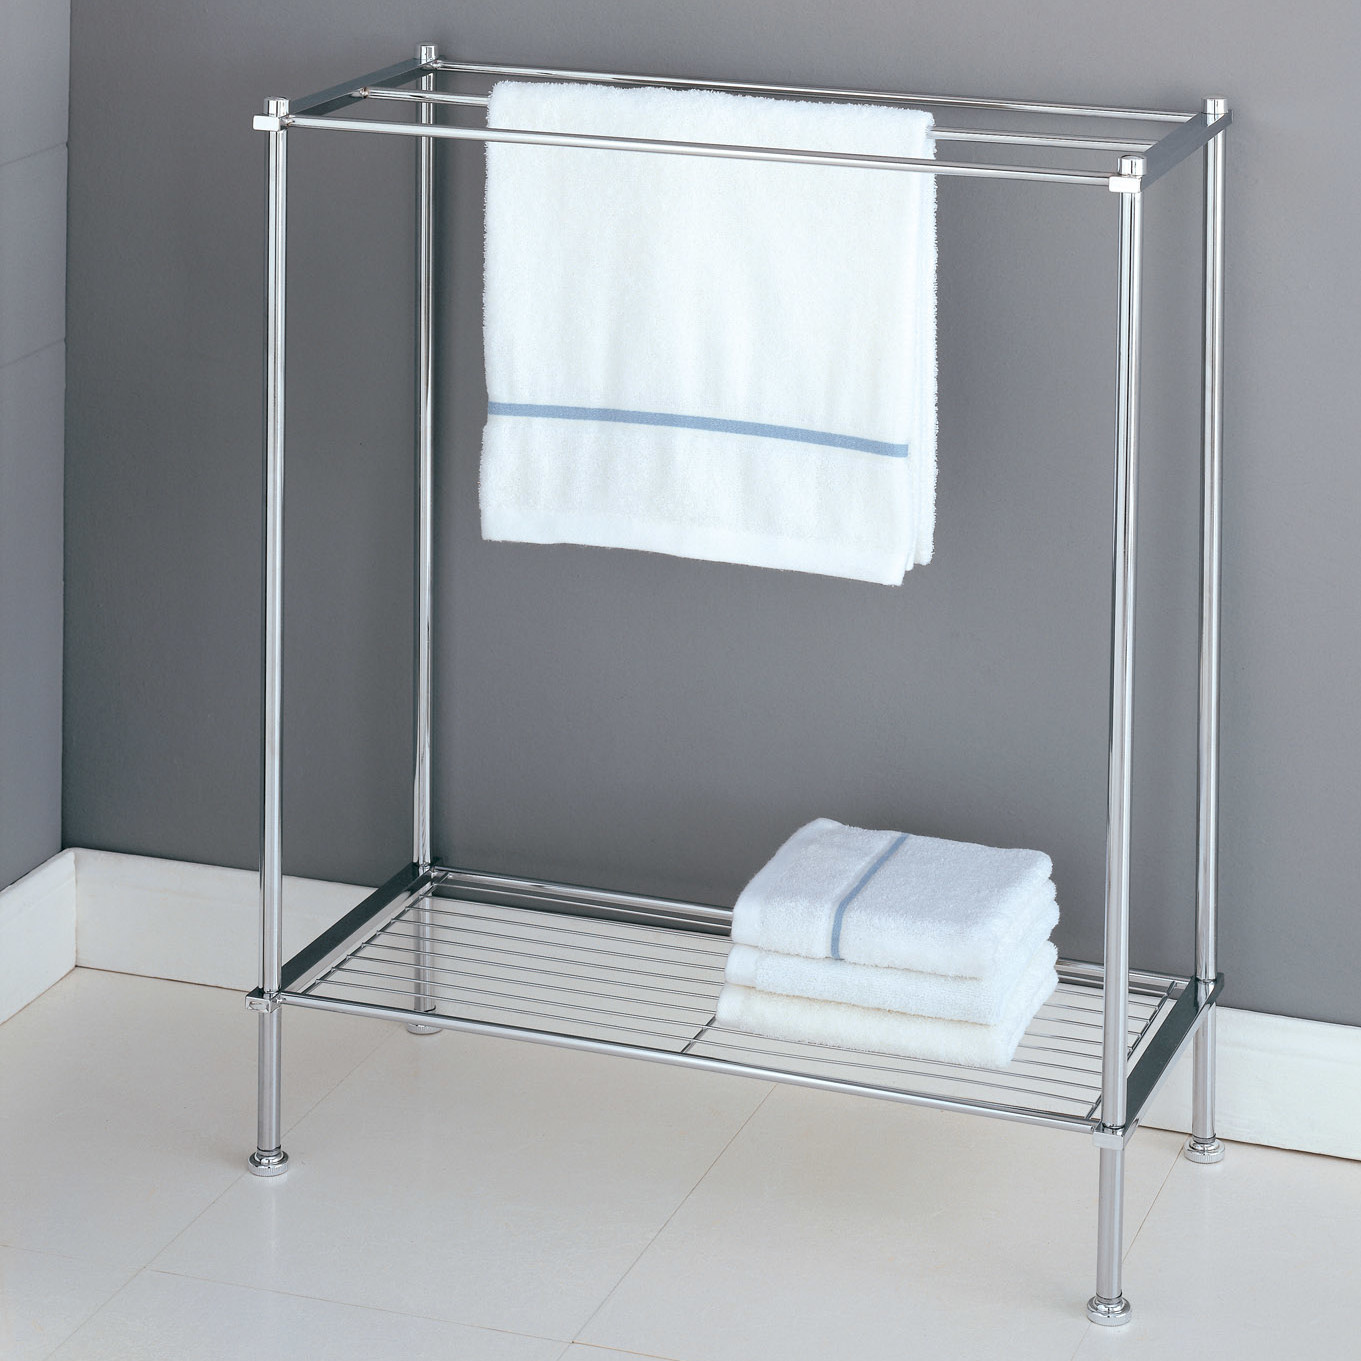 Stylish Free Standing Towel Racks For Outstanding Bathroom Ideas Homesfeed